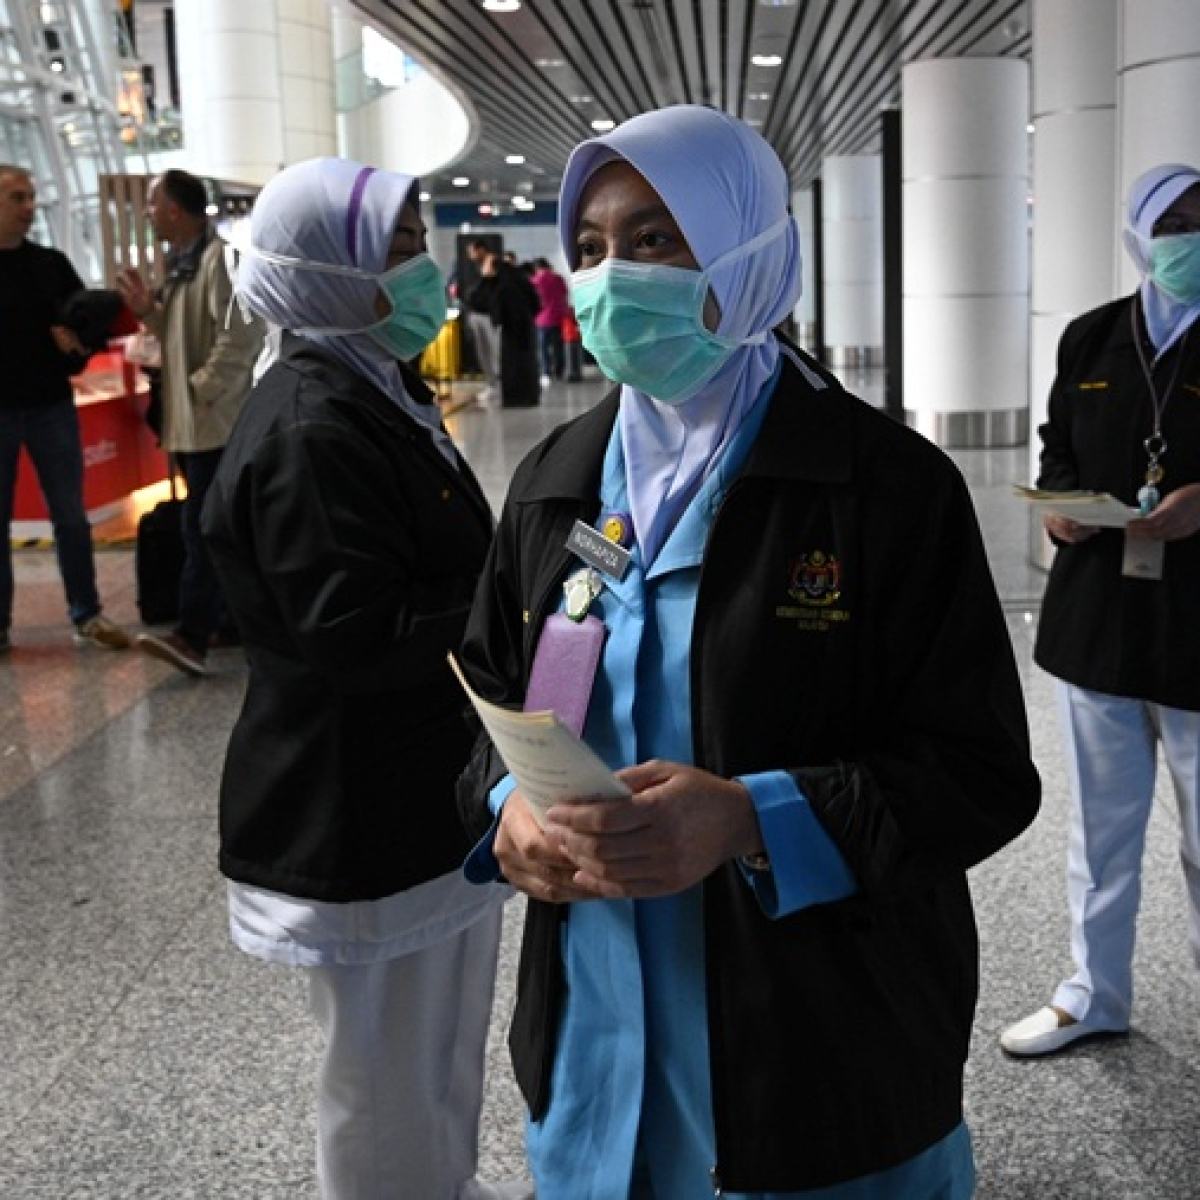 US confirms first case of Wuhan coronavirus on American soil; 9 dead, 400 affected in China